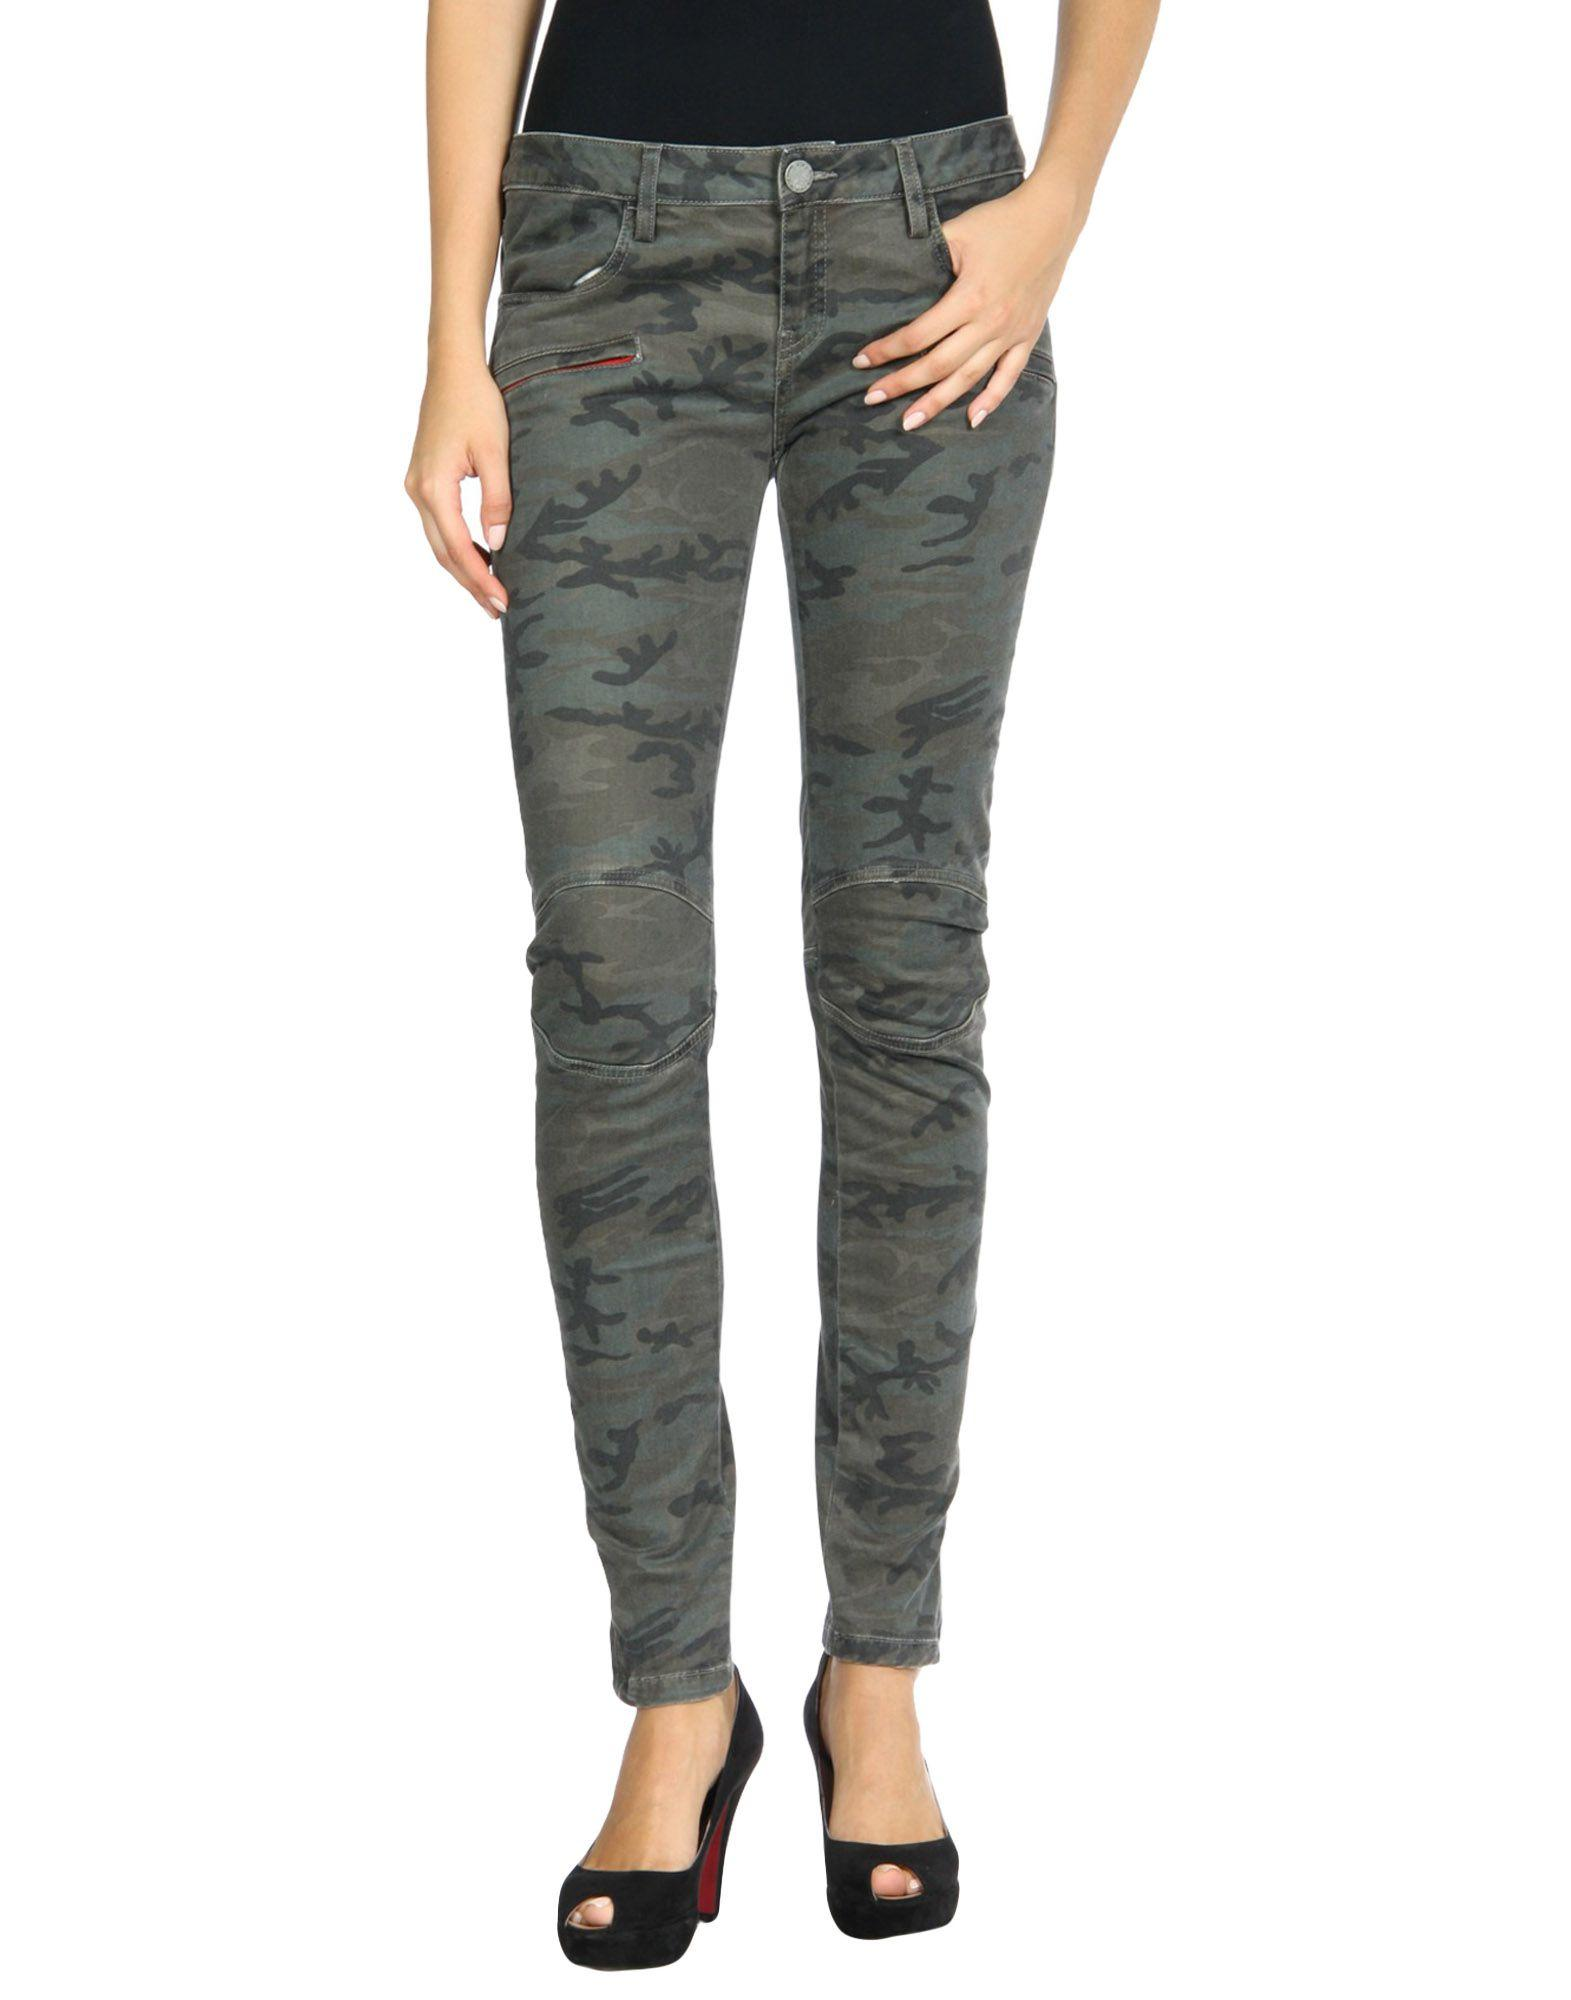 Etienne Marcel Casual Pants In Lead